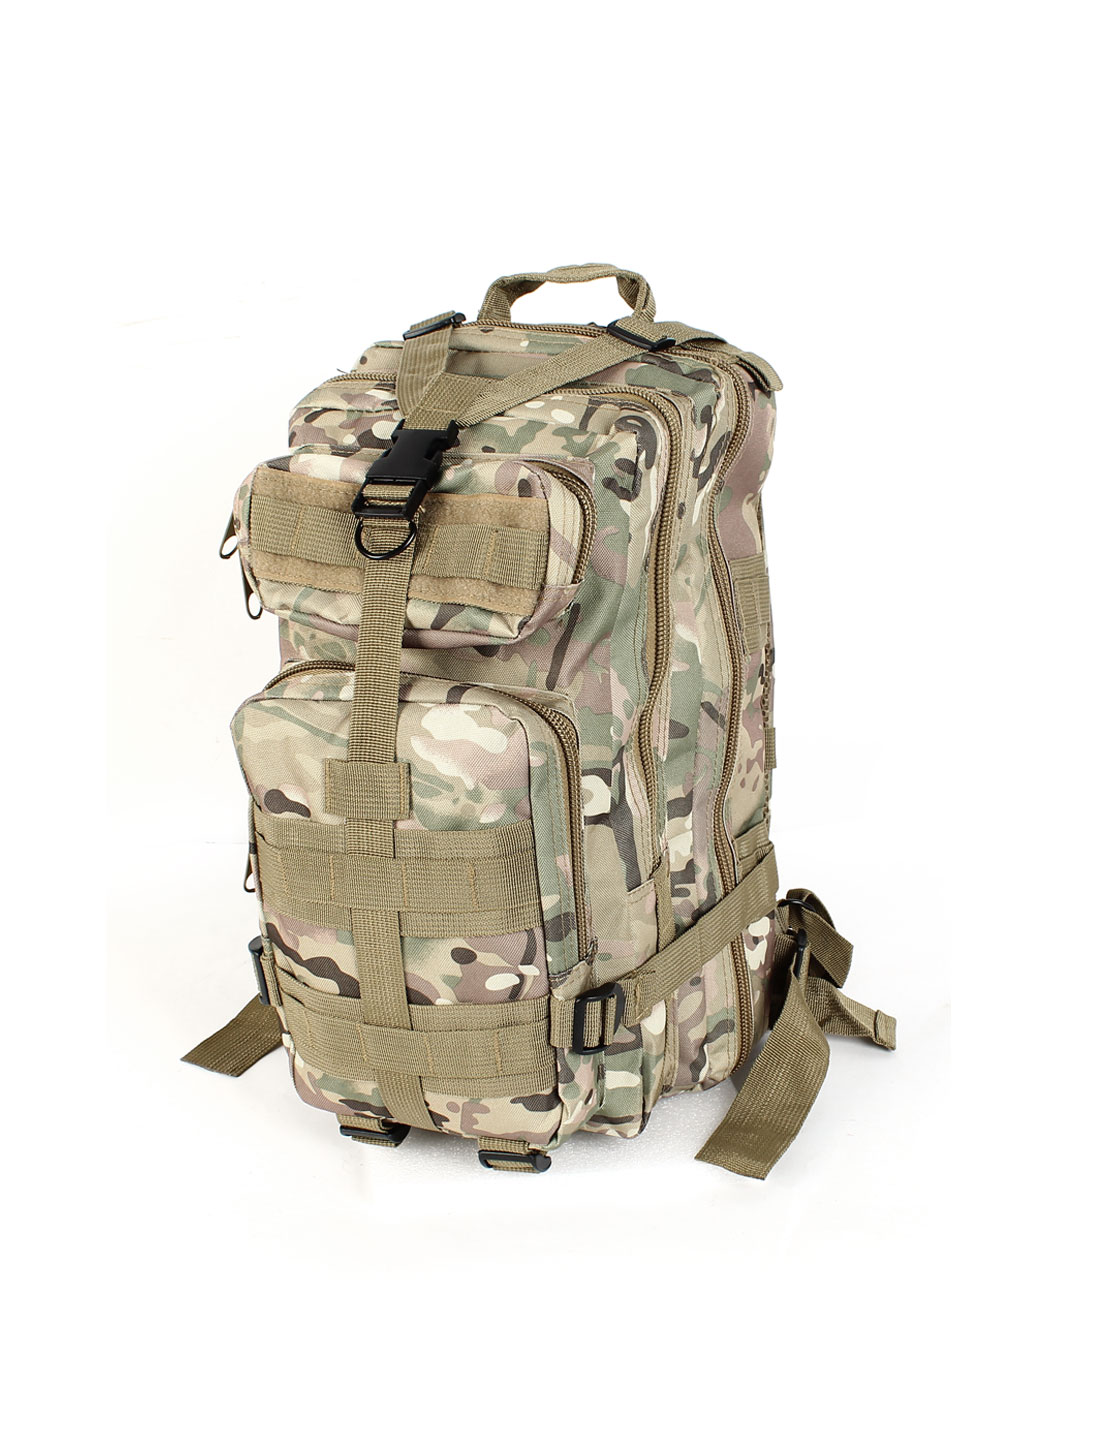 Unisex Military Tactical Camouflage Oxford Cloth Outdoor Hiking Camping Backpack